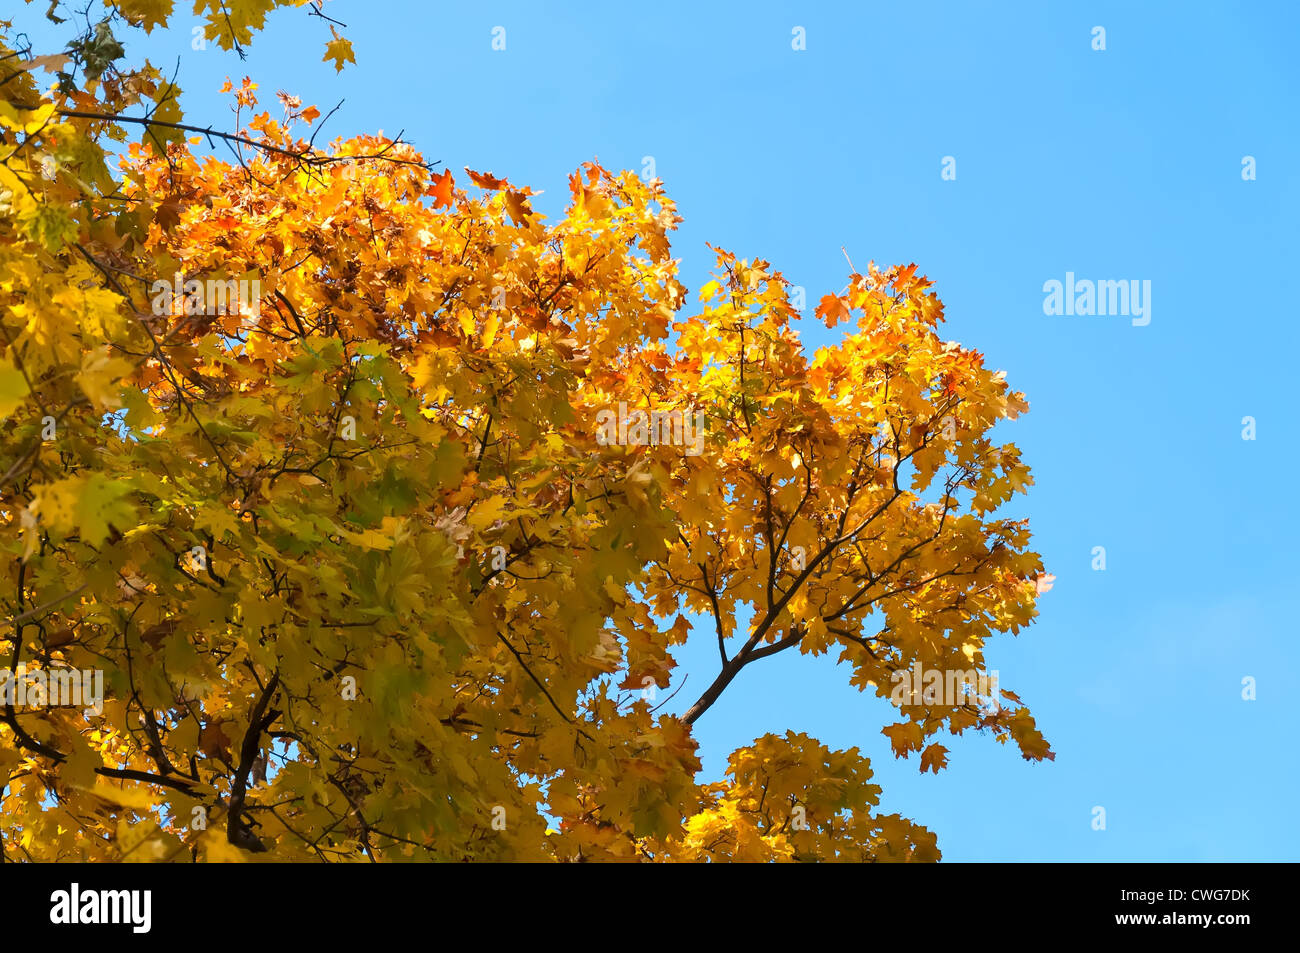 Yellow autumn Maple leaves against the blue sky. - Stock Image